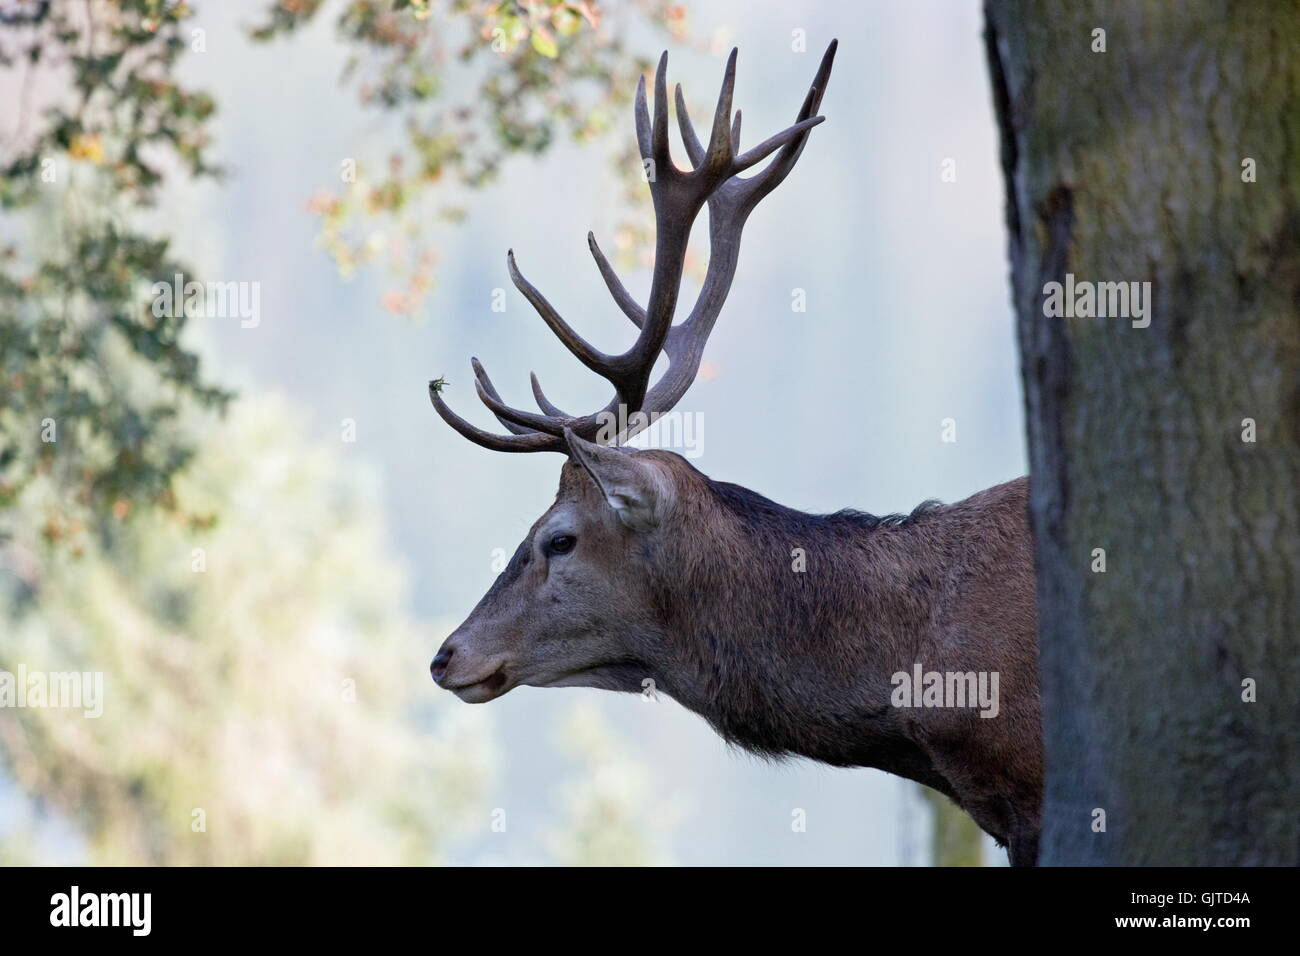 deer stag hart stag - Stock Image